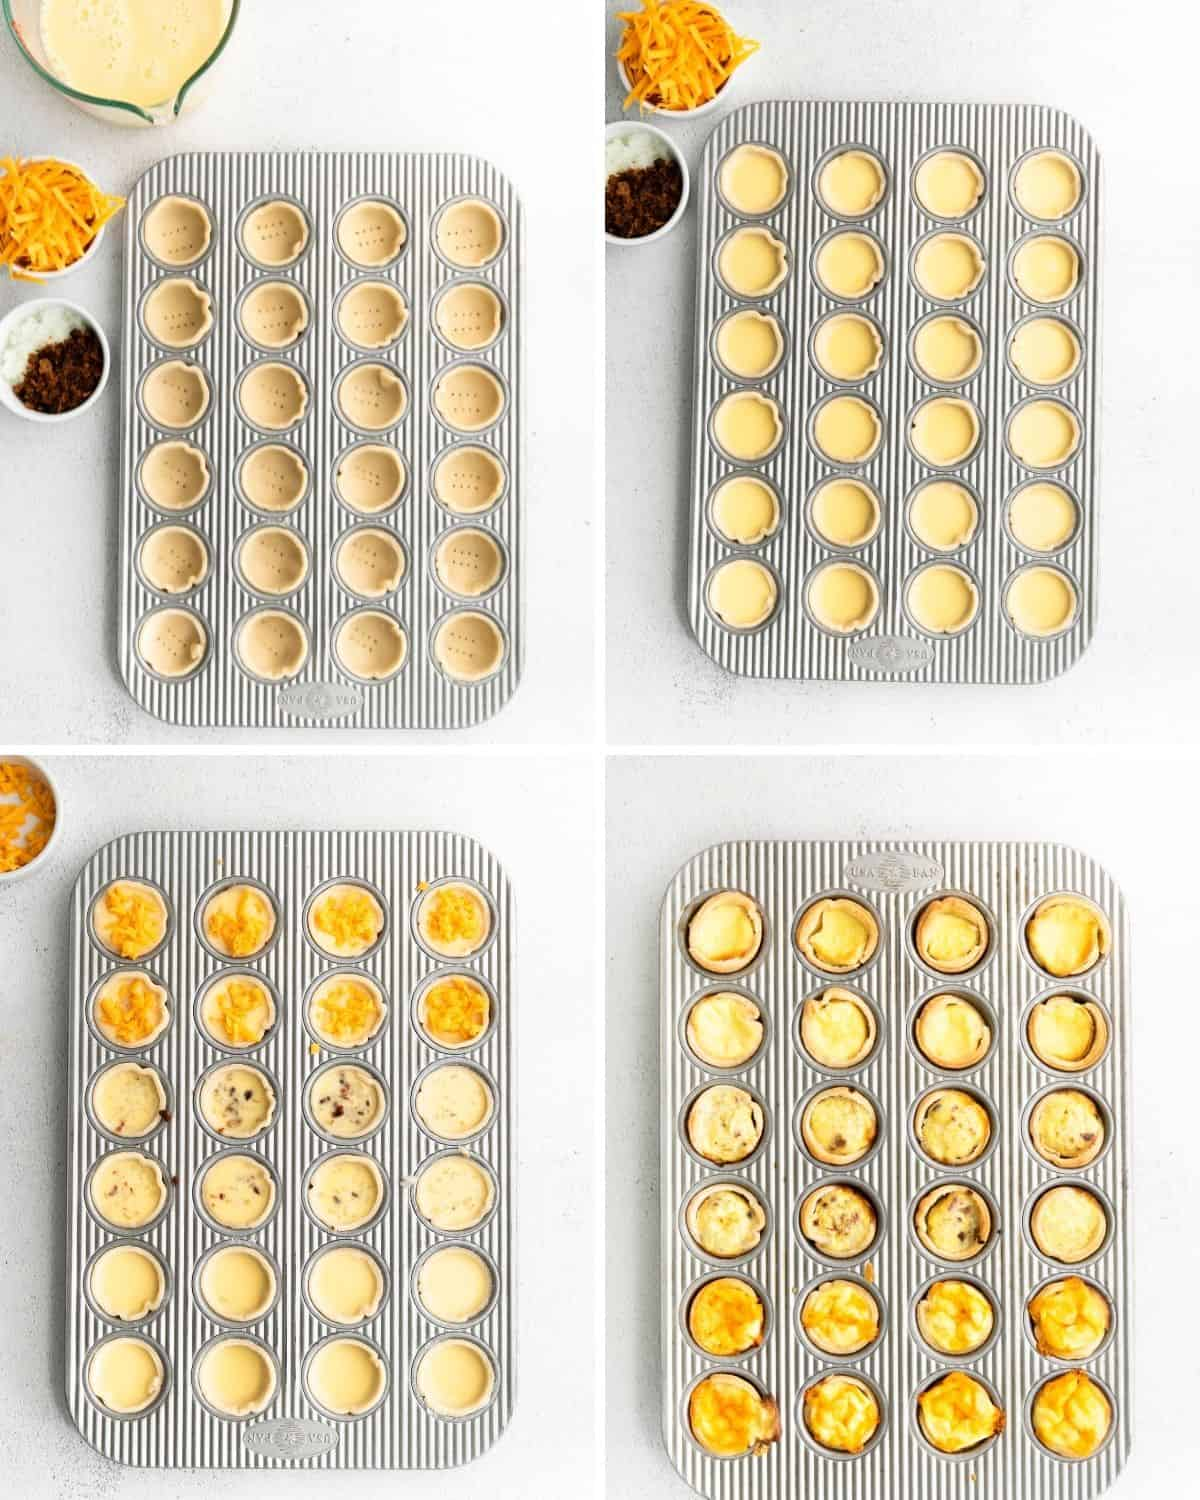 The step by step instructions to place pastry rounds and eggs into mini muffin tins to make mini quiche.